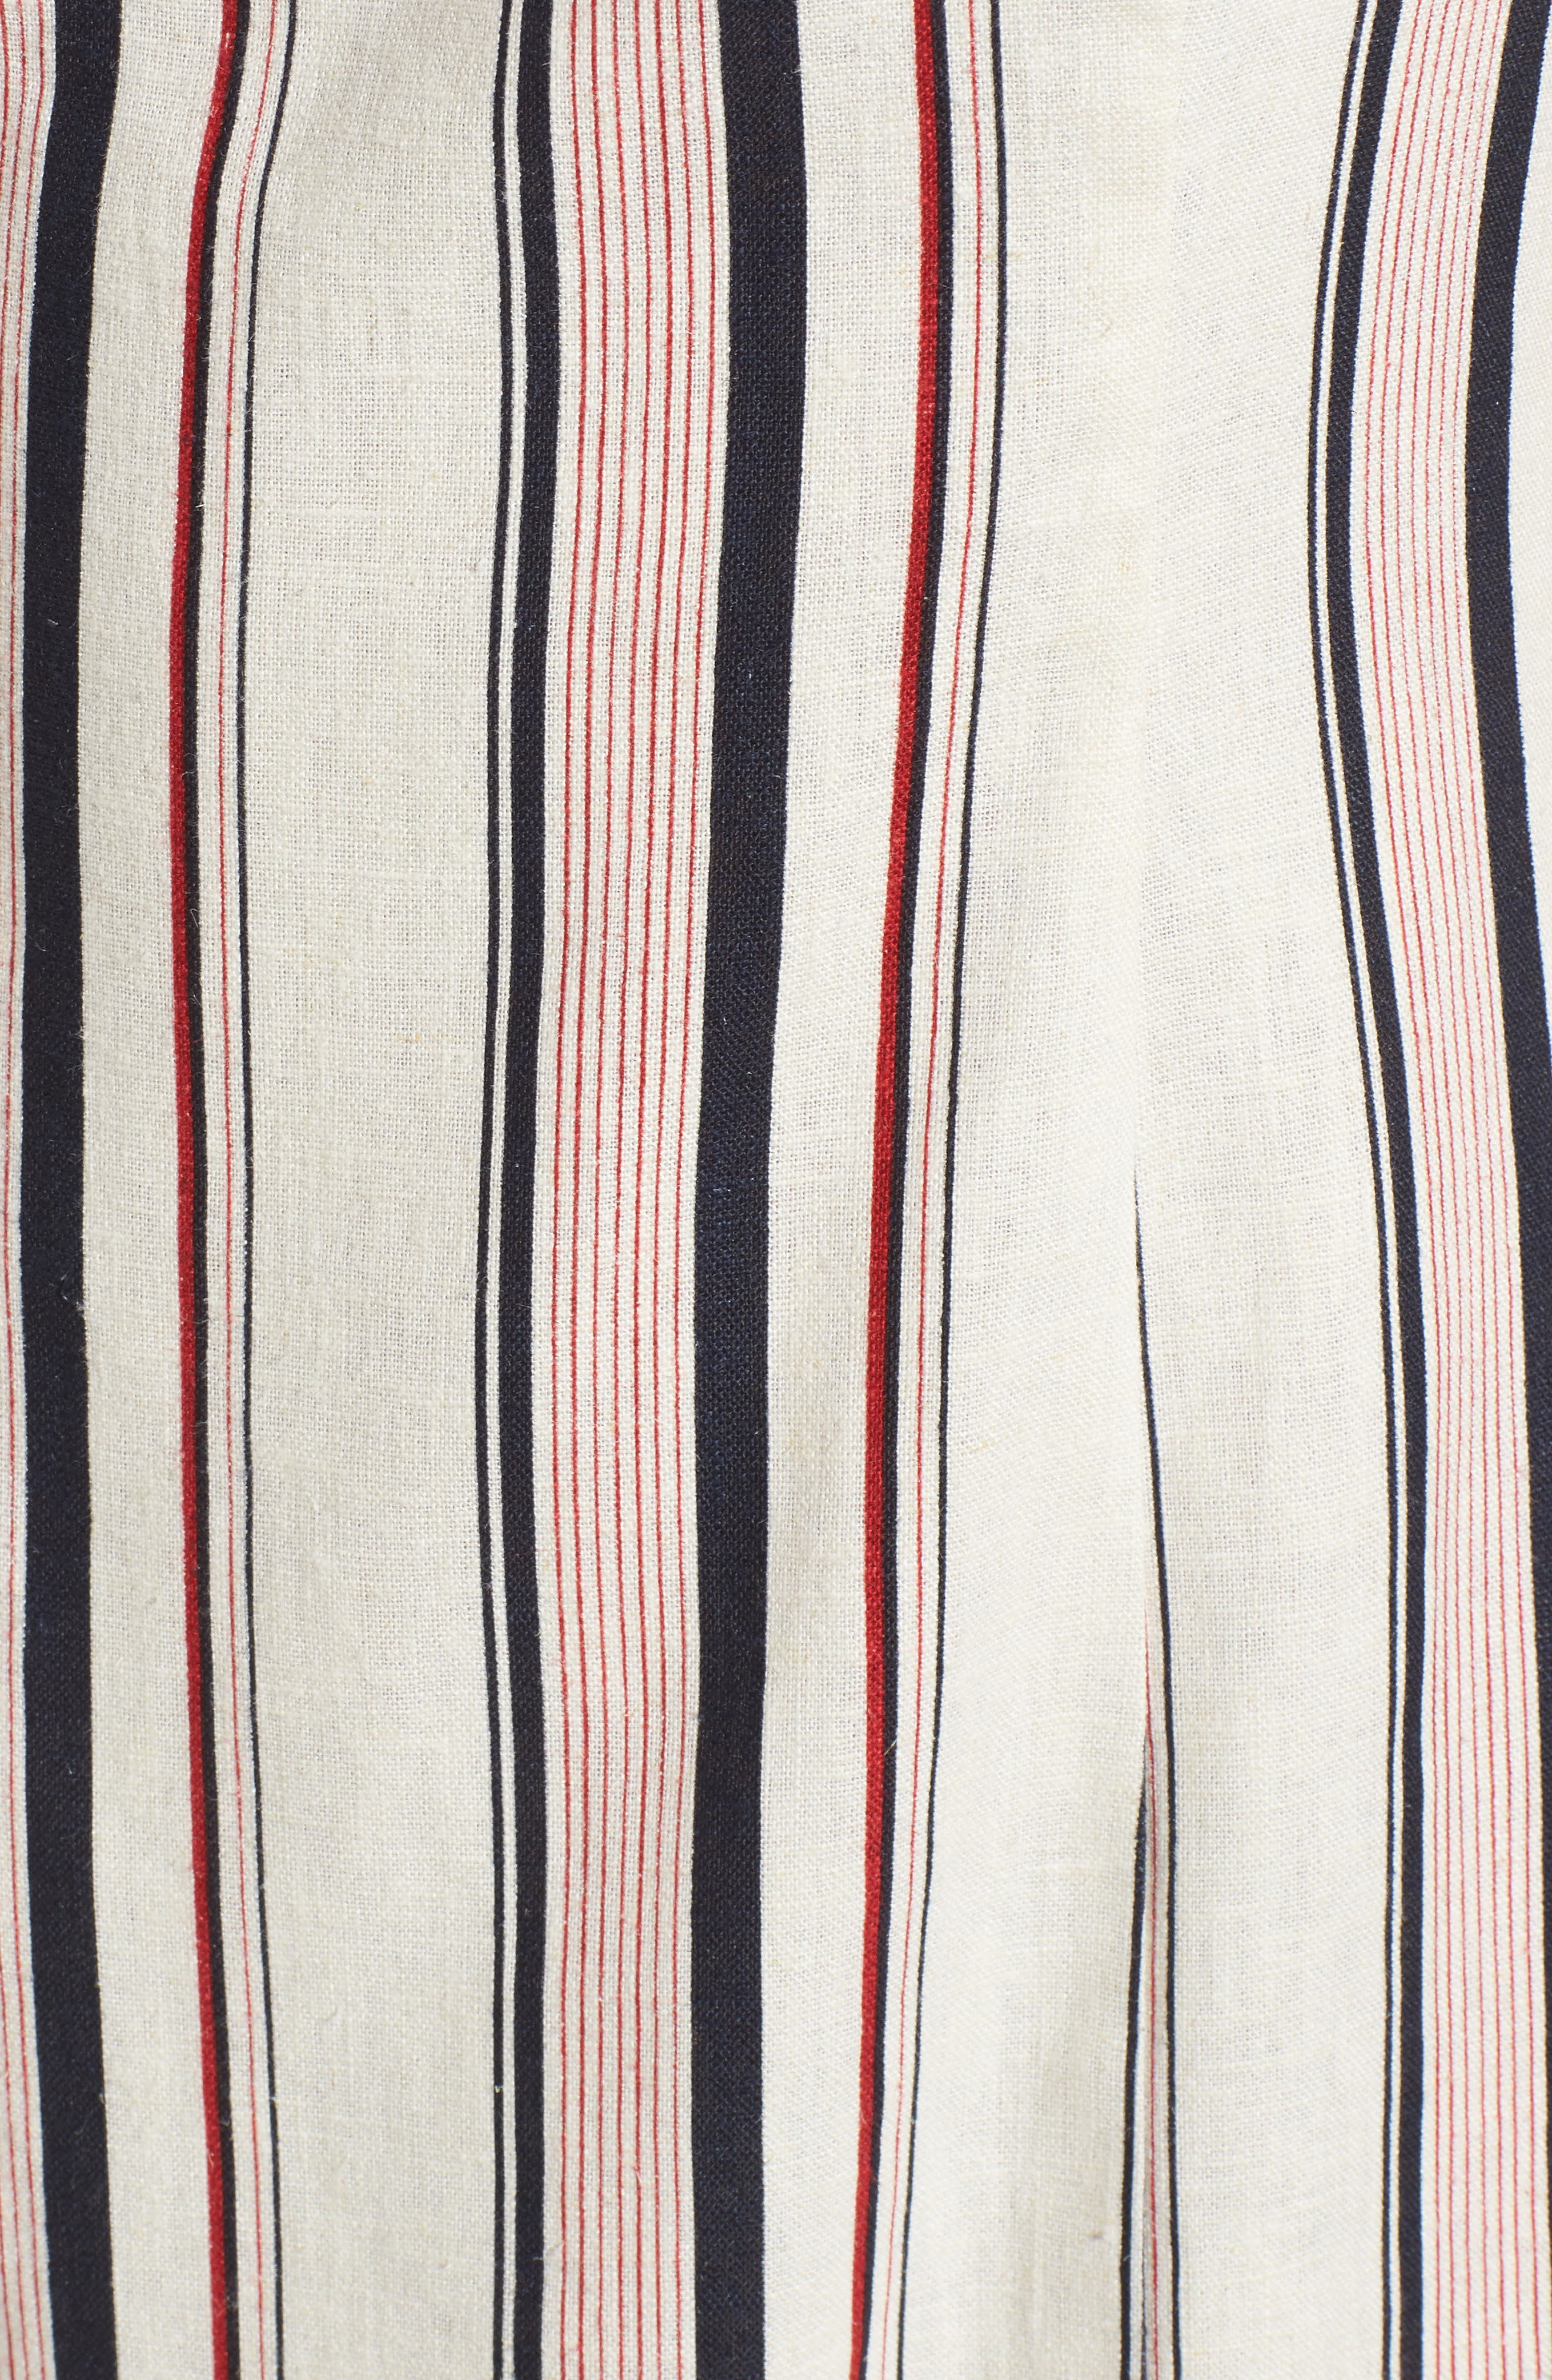 Striped Shift Dress,                             Alternate thumbnail 3, color,                             Navy Red Stripe